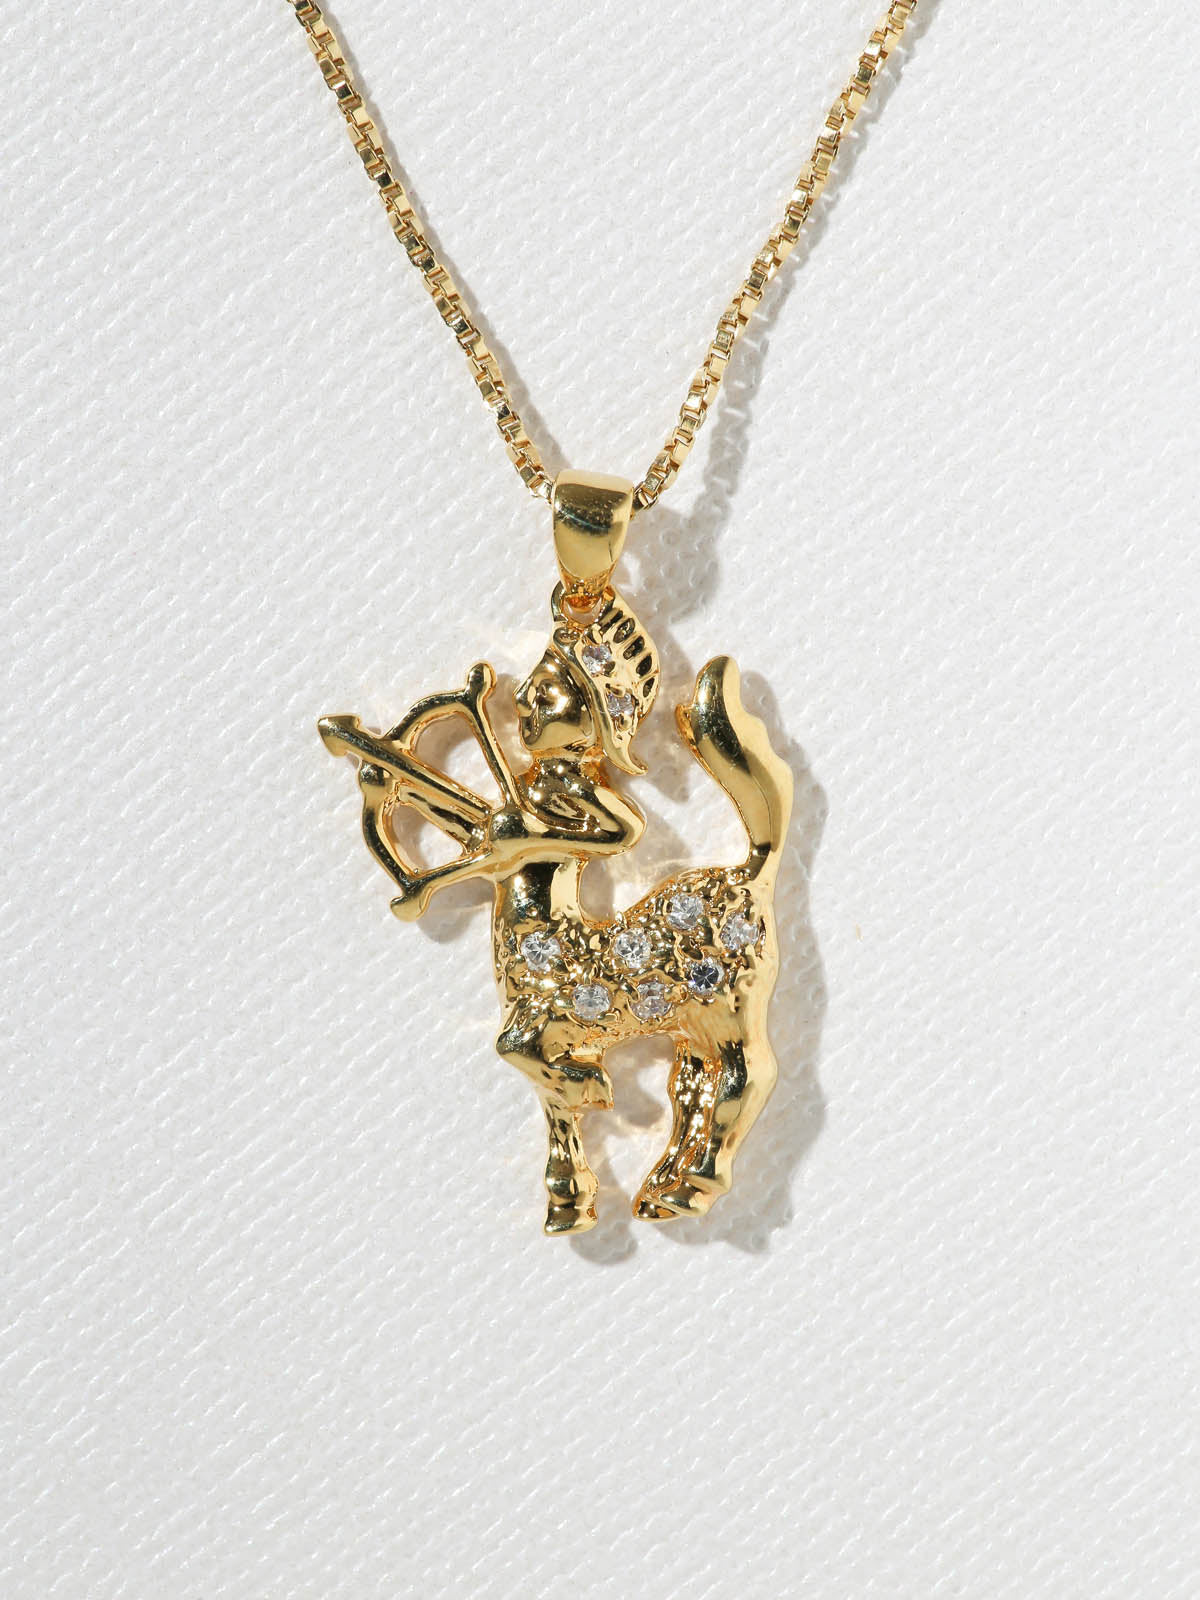 Necklaces The Star Sign Necklaces: Virgo - Sagittarius Vanessa Mooney